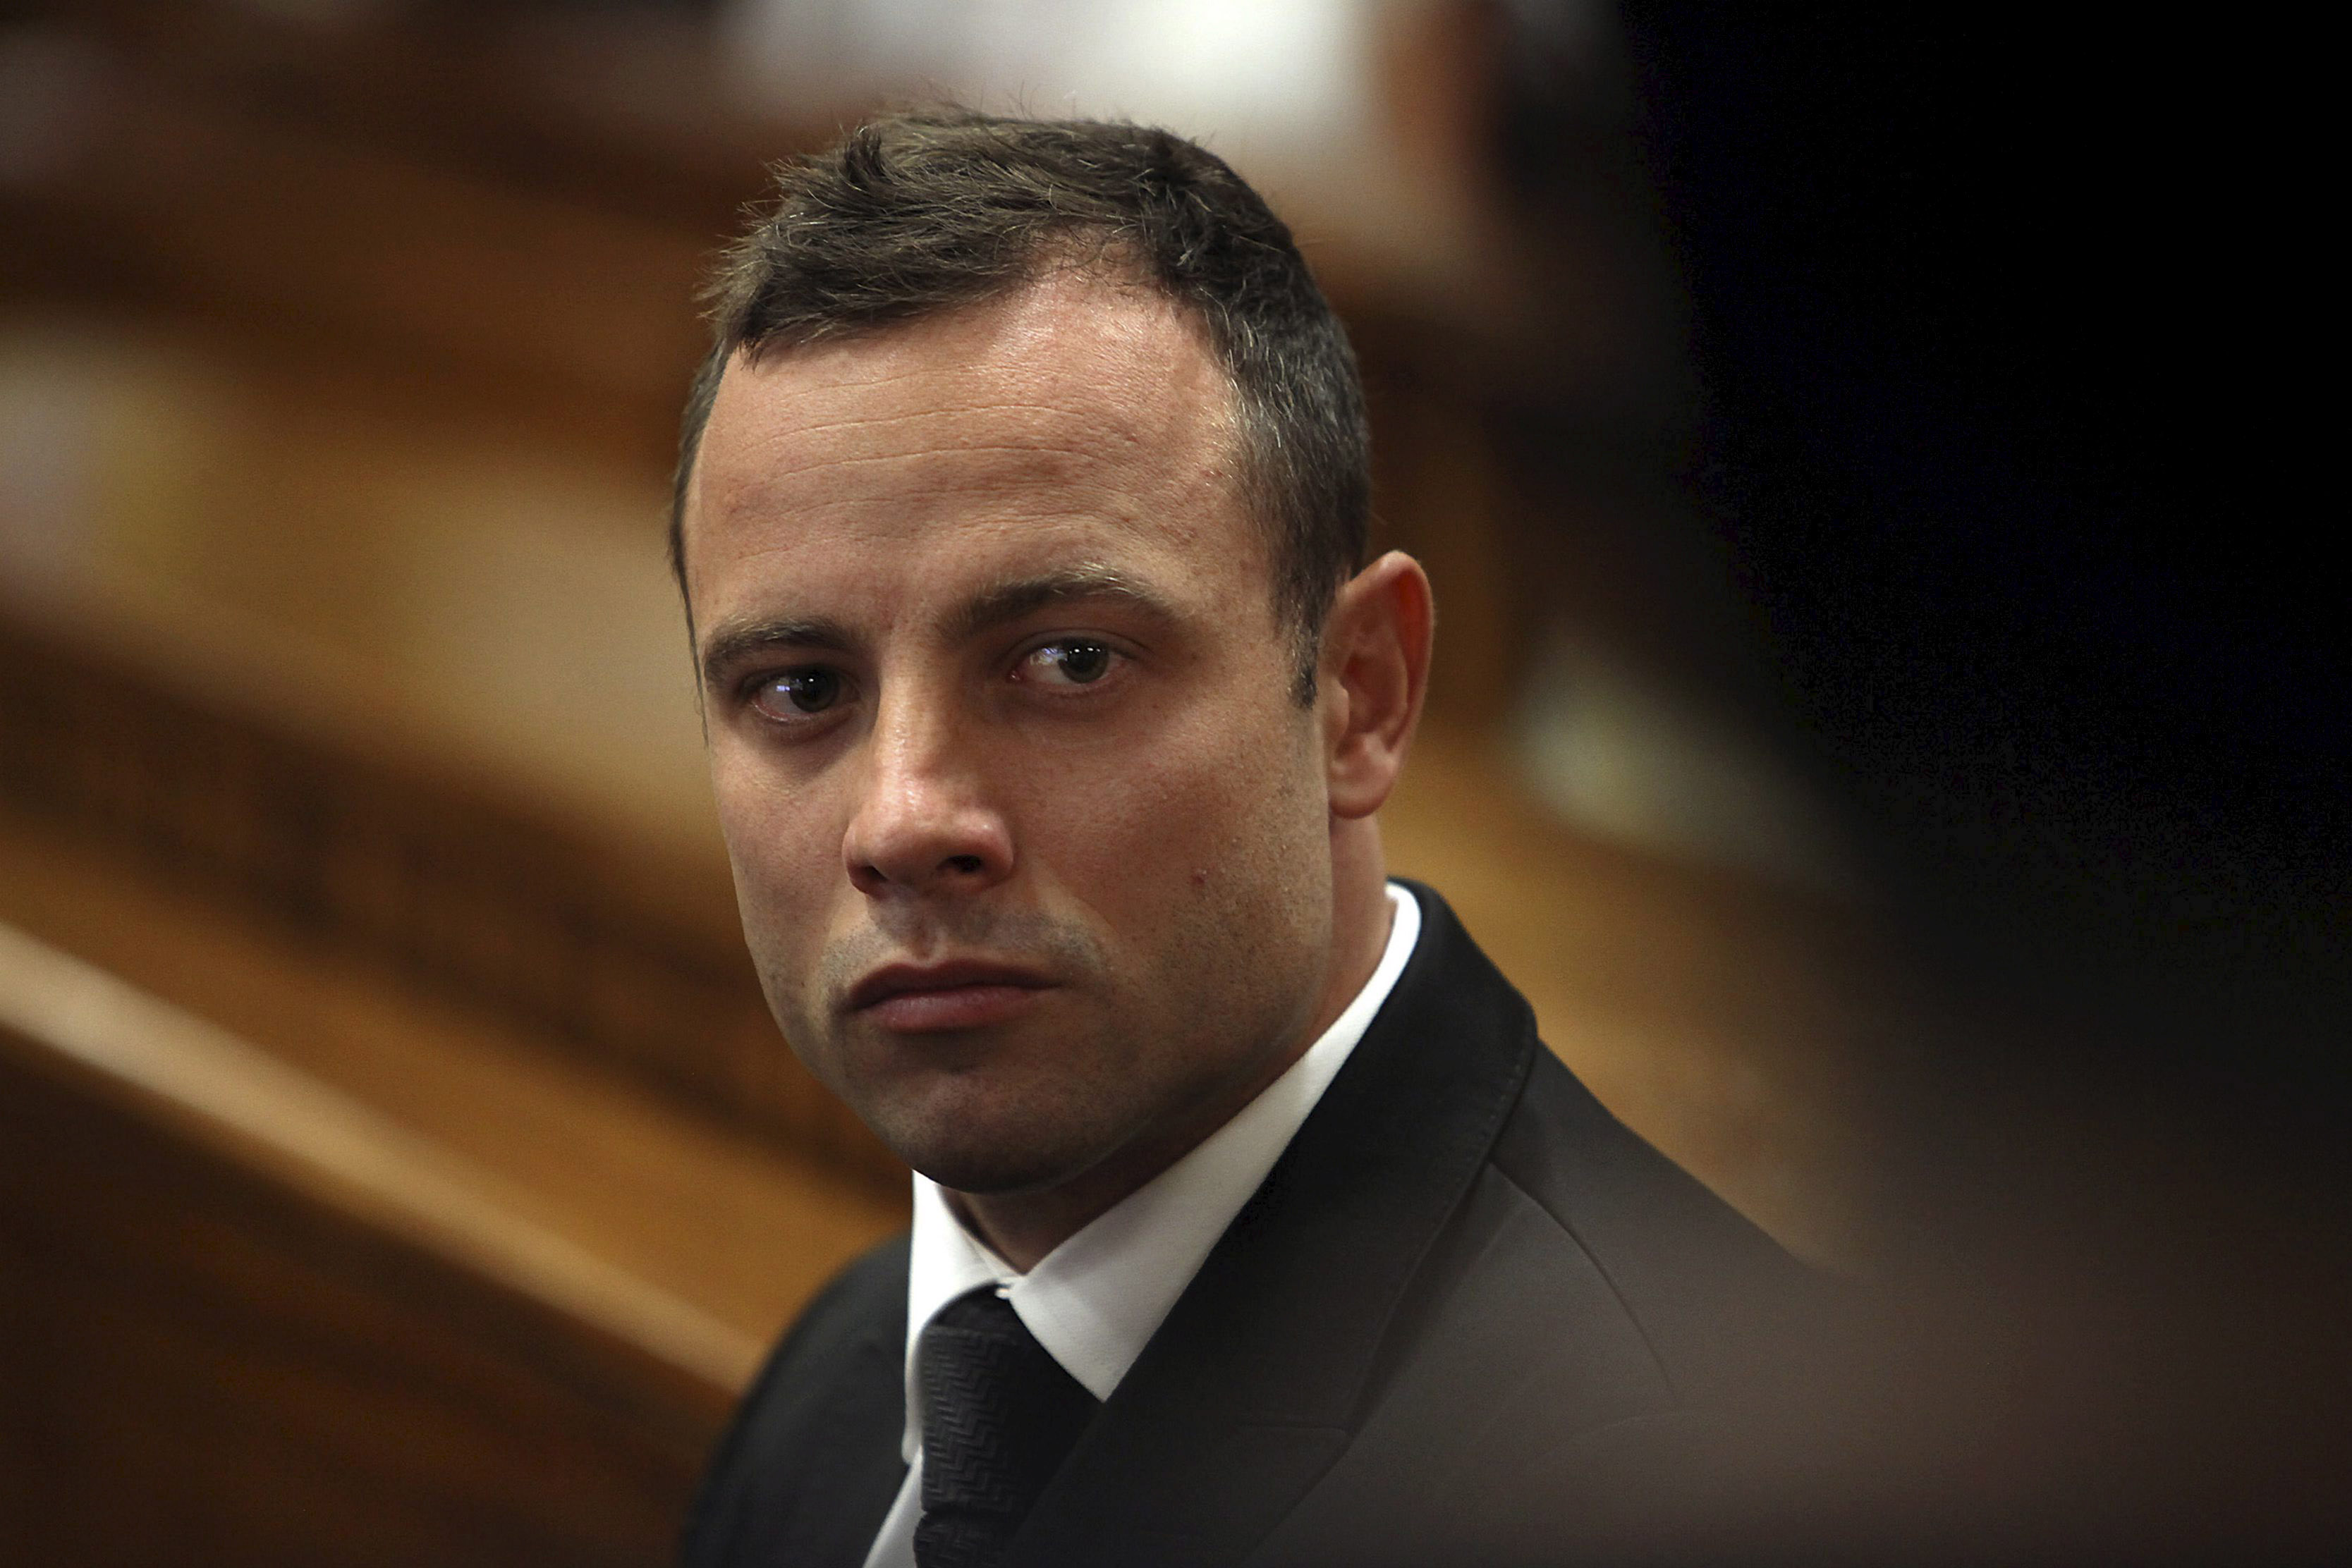 ... Documentary On Oscar Pistorius Trial To Air On BBC Three TV News Oscar Pistorius - oscarpistorius_n9ci53z4zk0512s7rvg5tp6y9